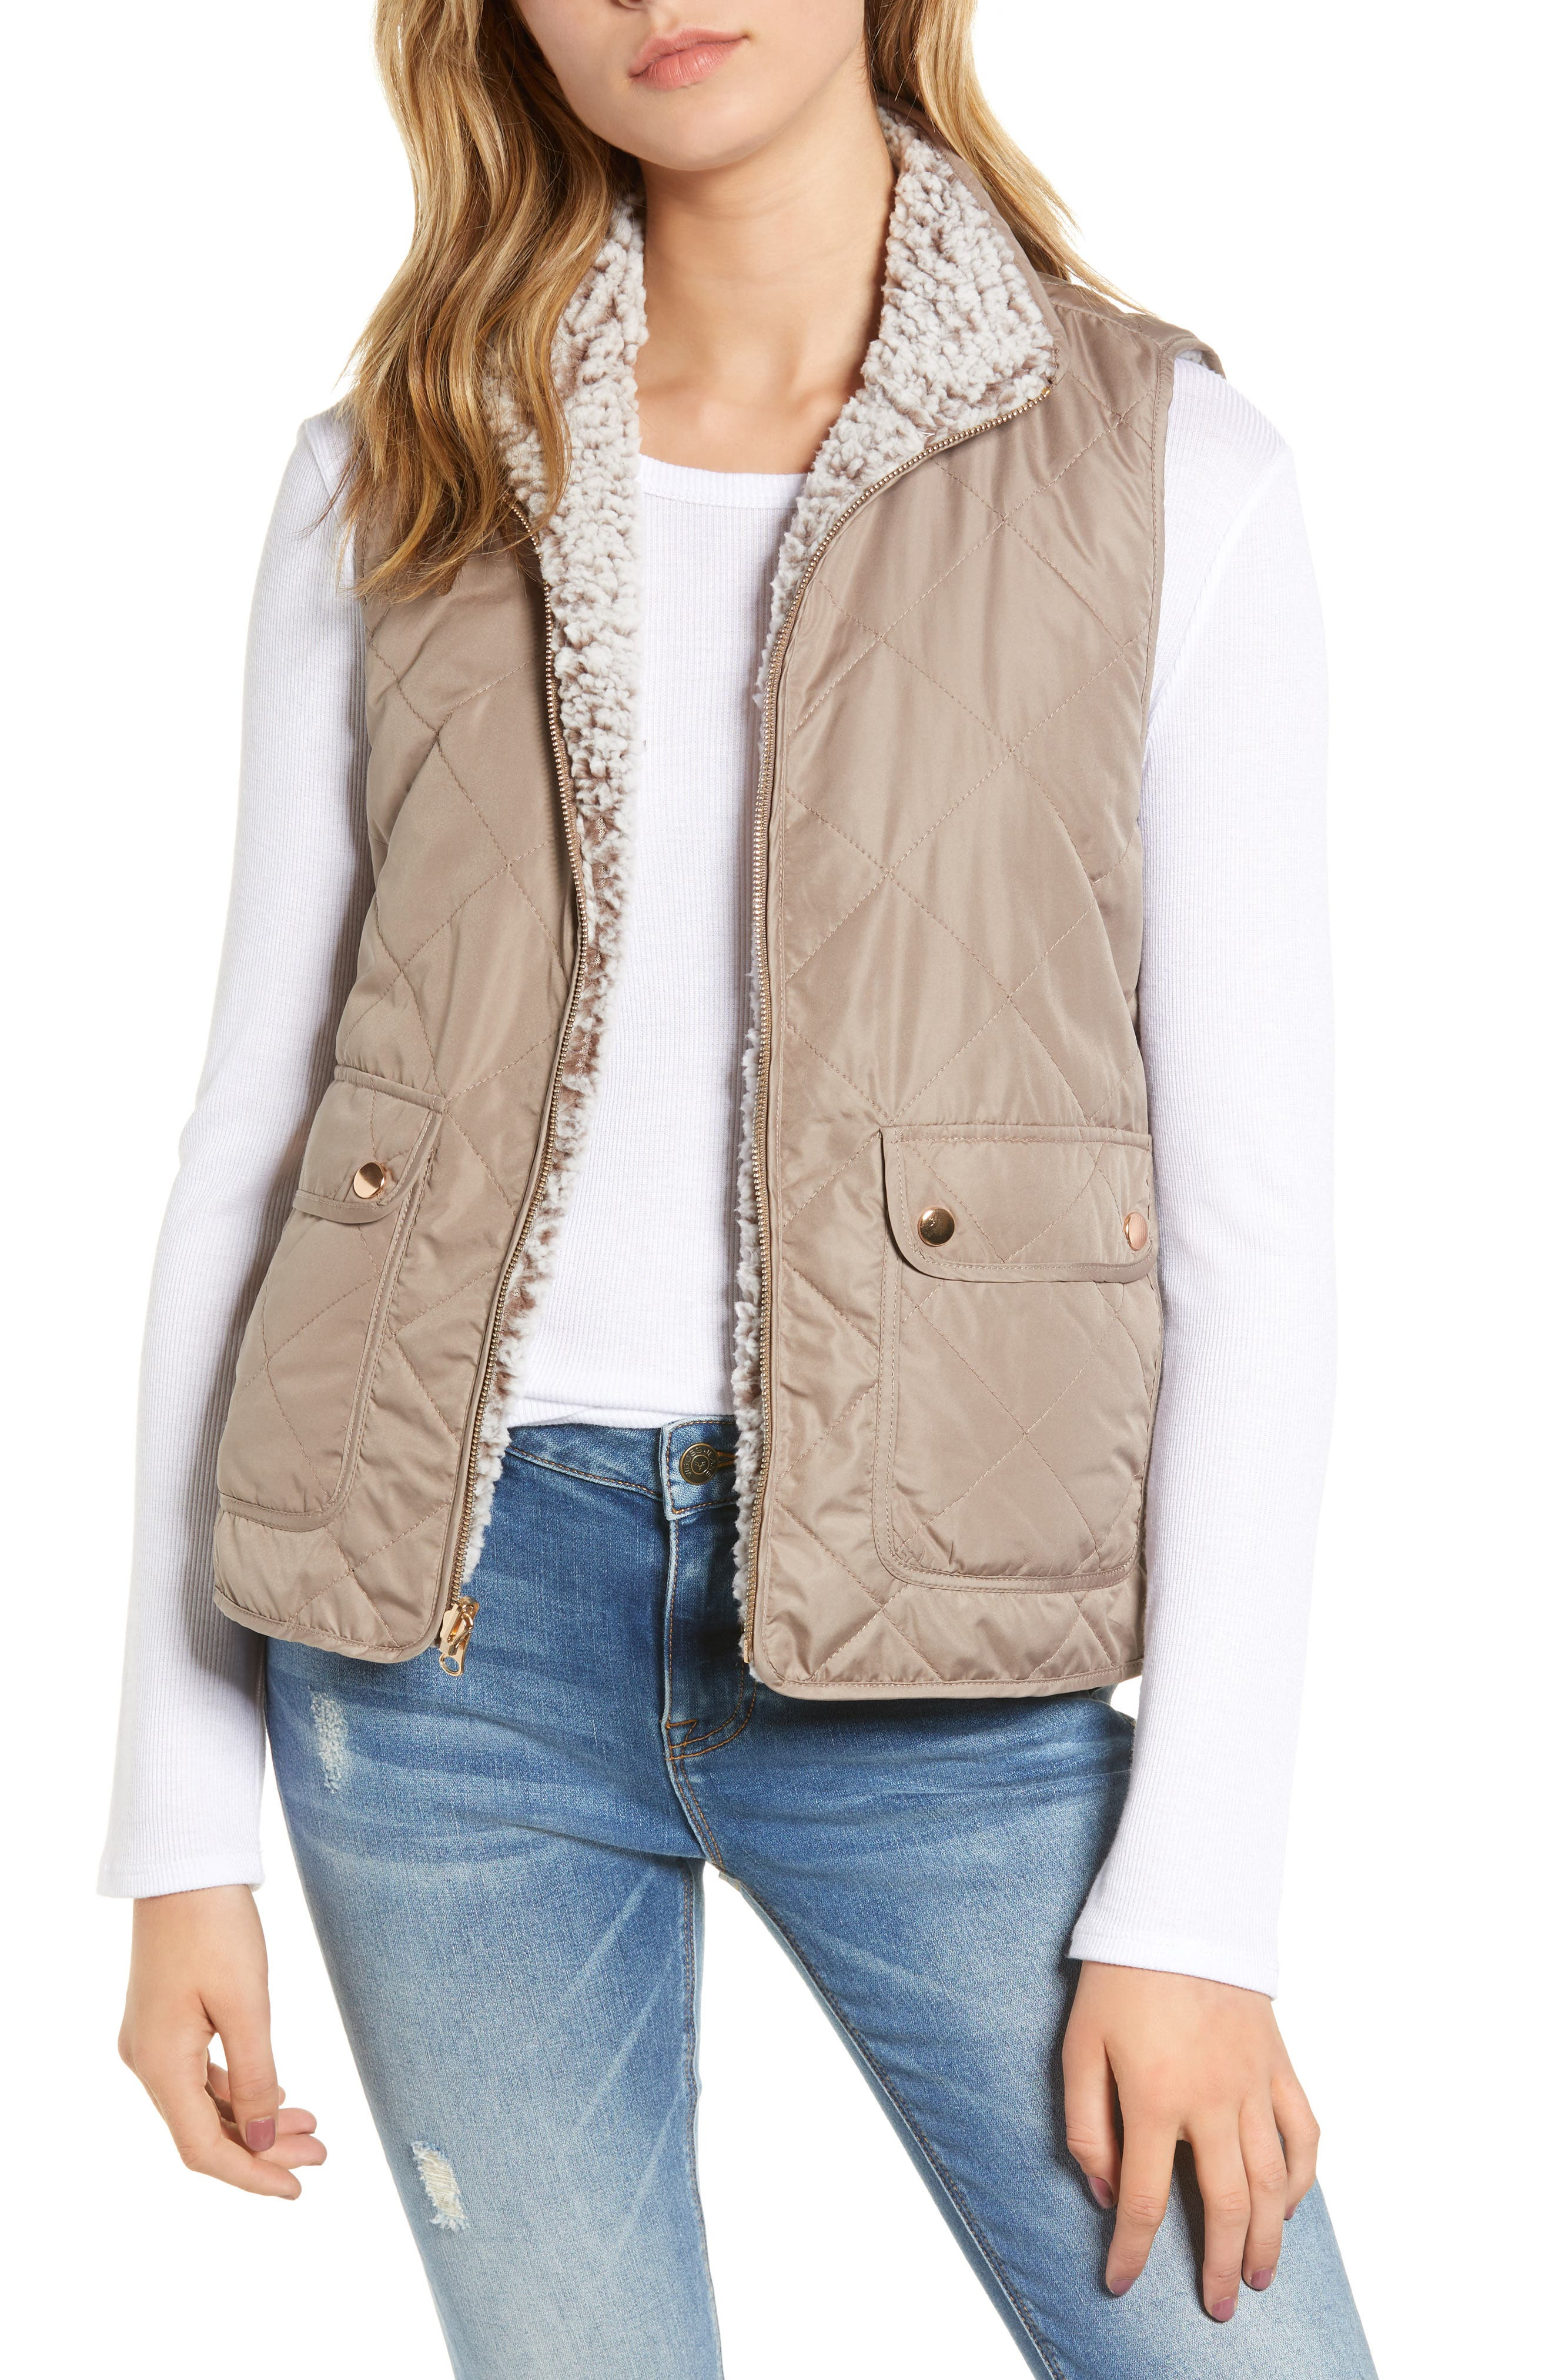 THREAD & SUPPLY, Reversible Fleece Lined Quilted Vest, Main thumbnail 1, color, MUSHROOM